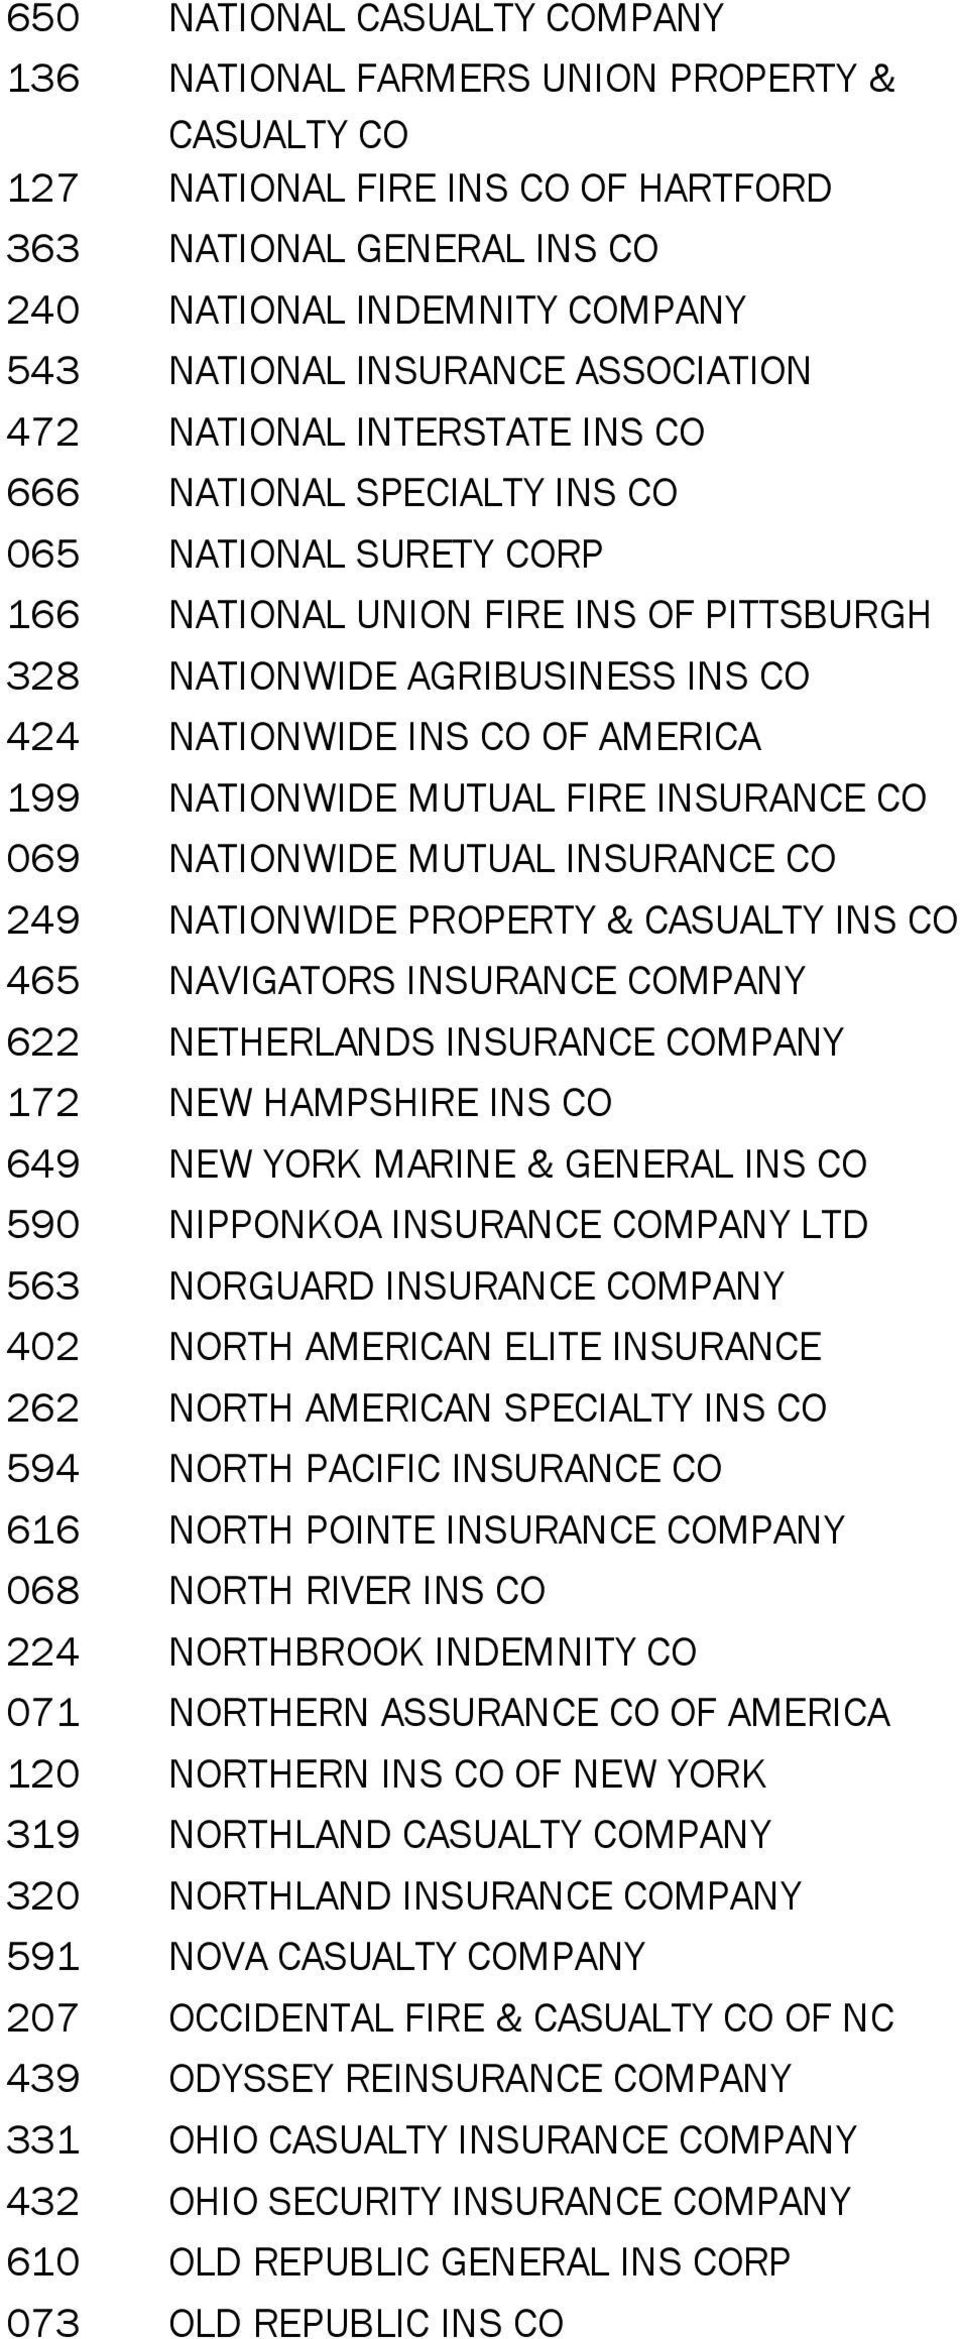 NATIONWIDE MUTUAL FIRE INSURANCE CO 069 NATIONWIDE MUTUAL INSURANCE CO 249 NATIONWIDE PROPERTY & CASUALTY INS CO 465 NAVIGATORS INSURANCE 622 NETHERLANDS INSURANCE 172 NEW HAMPSHIRE INS CO 649 NEW